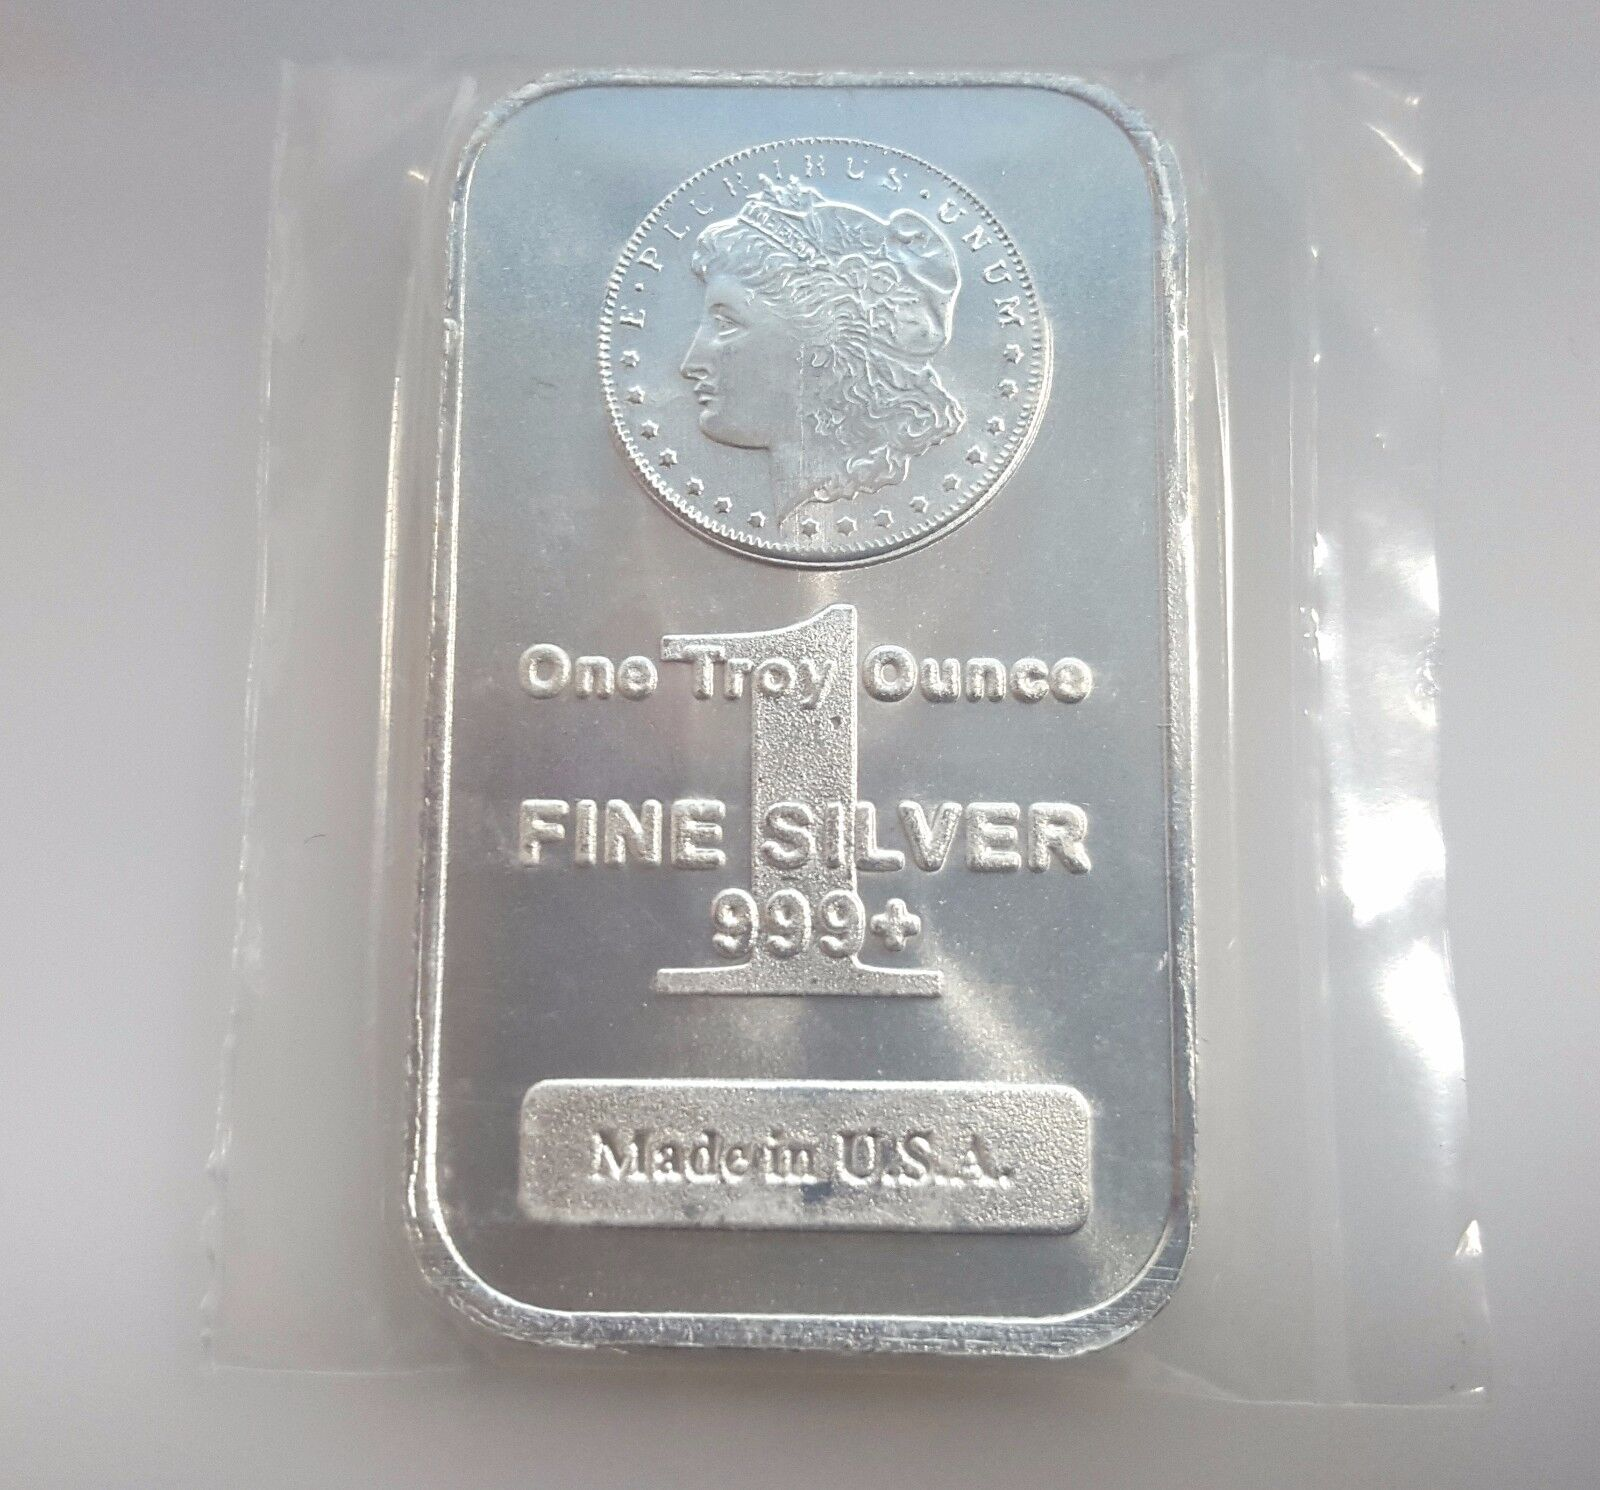 One Troy Ounce Fine Silver MORGAN SILVER BAR MADE IN THE USA